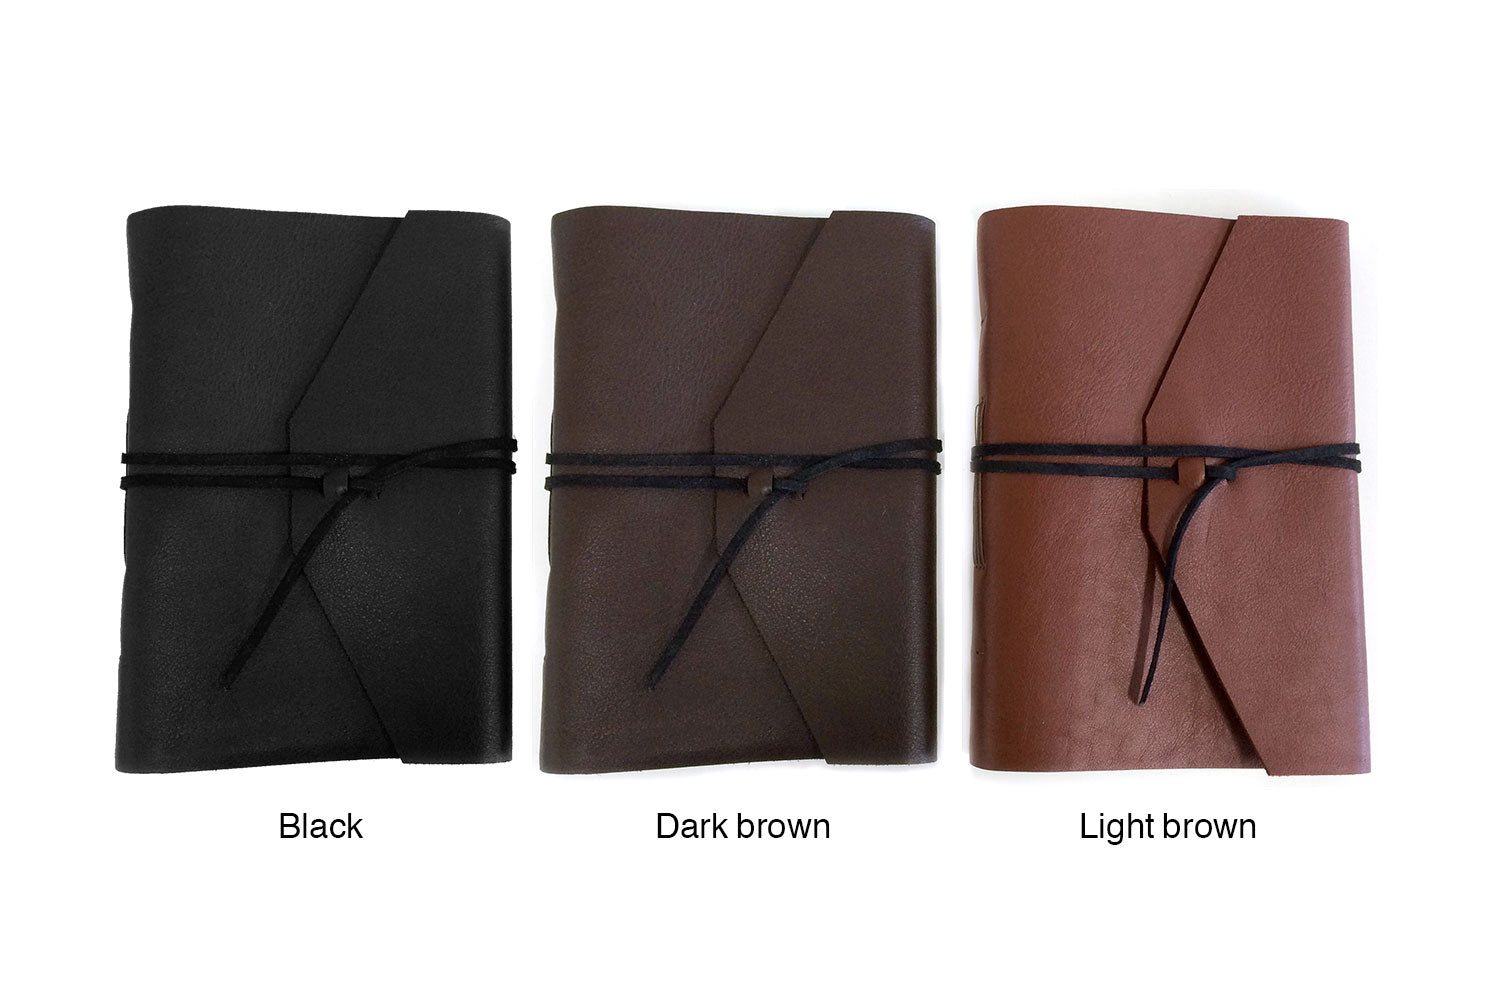 rustic leather guest book in black leather, dark brown leather, light brown leather